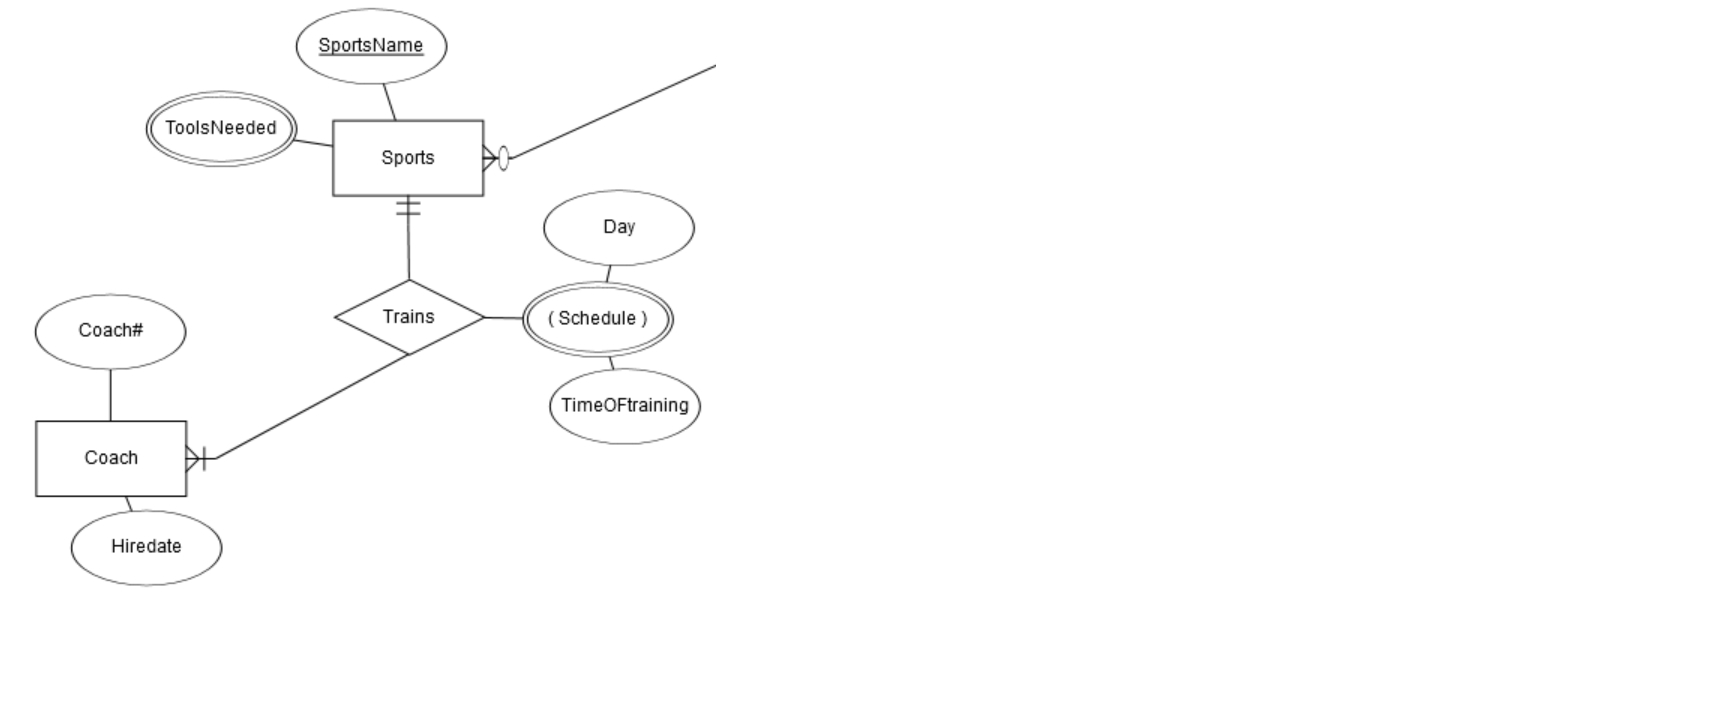 How To Convert This Er Diagram To Relational Schema - Stack intended for Er Diagram To Relational Schema